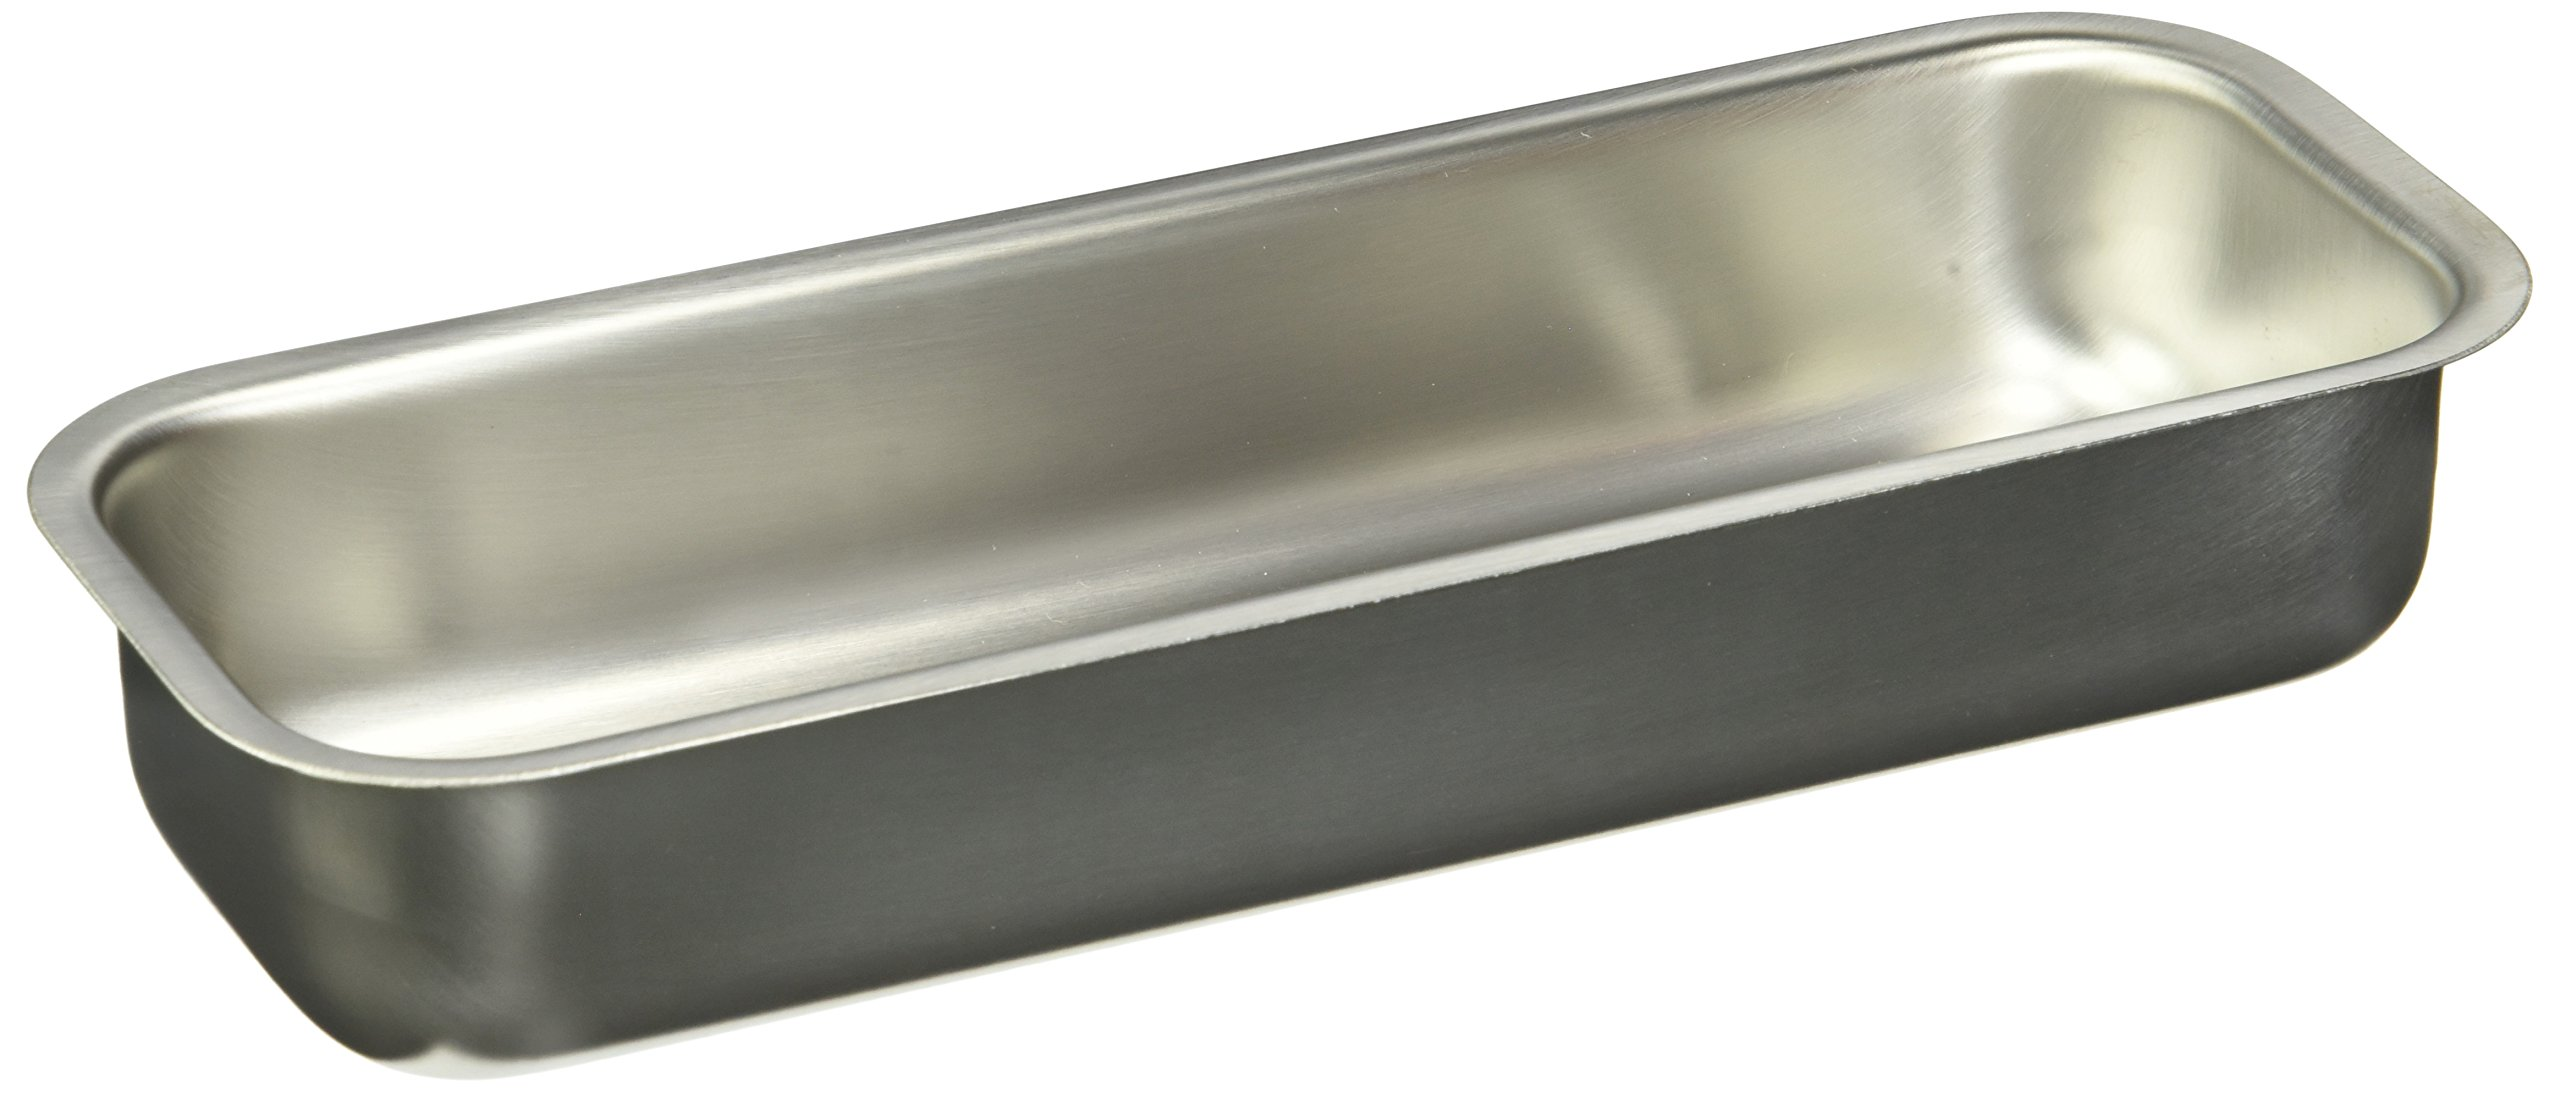 Polar Ware 83 Stainless Steel Catheter Tray, 8-3/4'' L x 3-1/4'' W x 1-1/2'' H